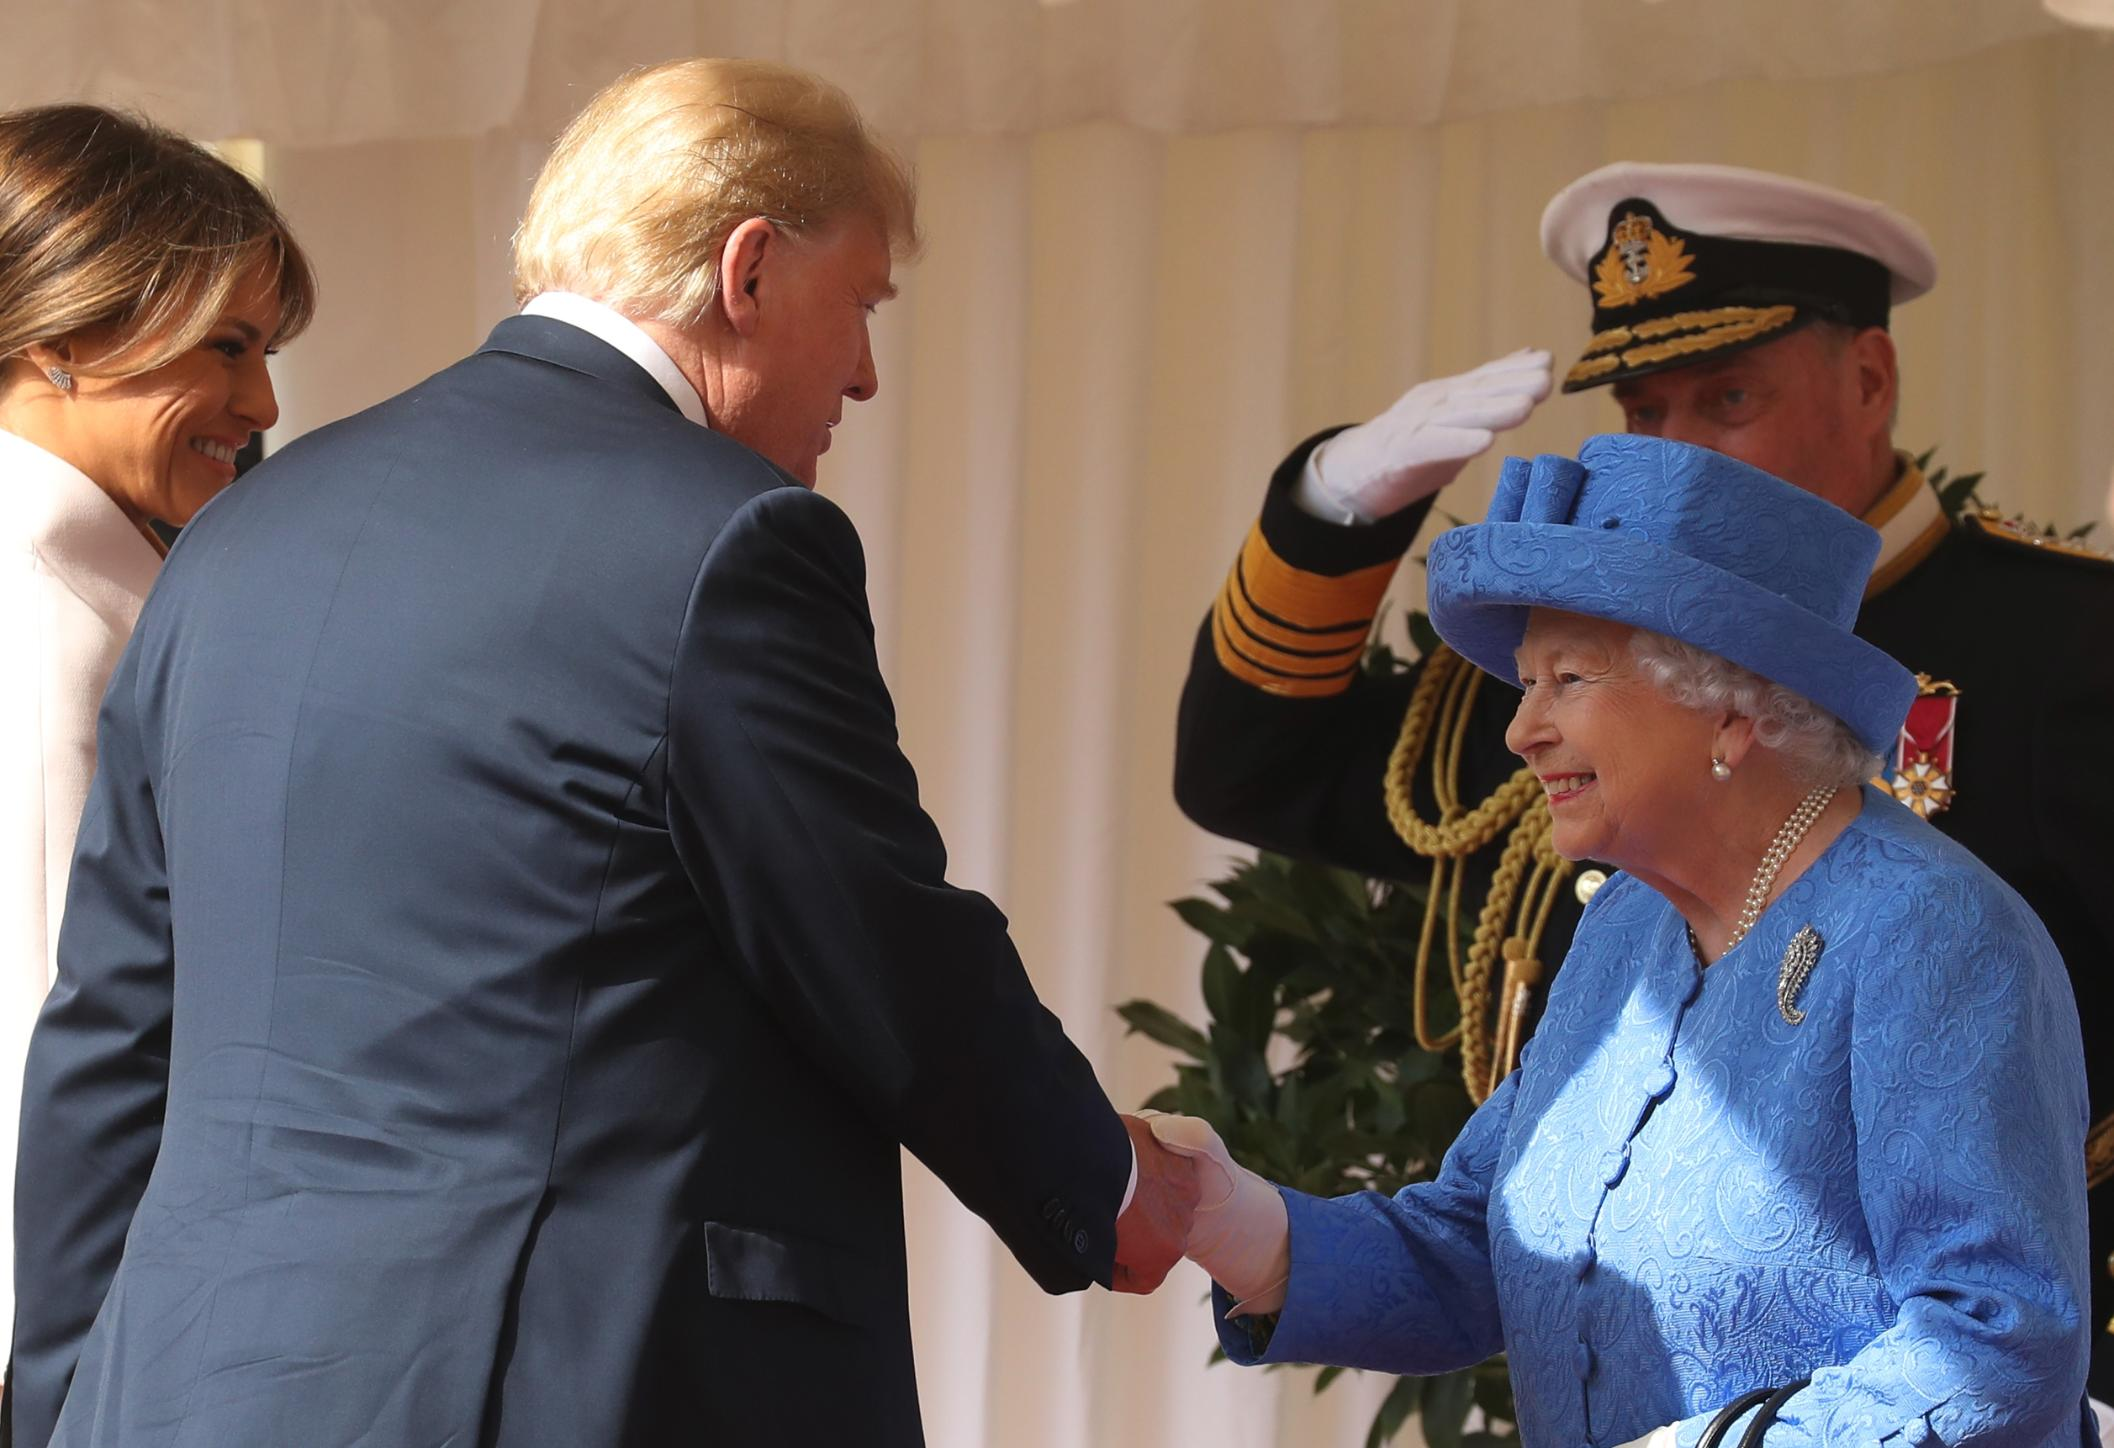 Trump criticized for his stroll with Queen - CNN Video